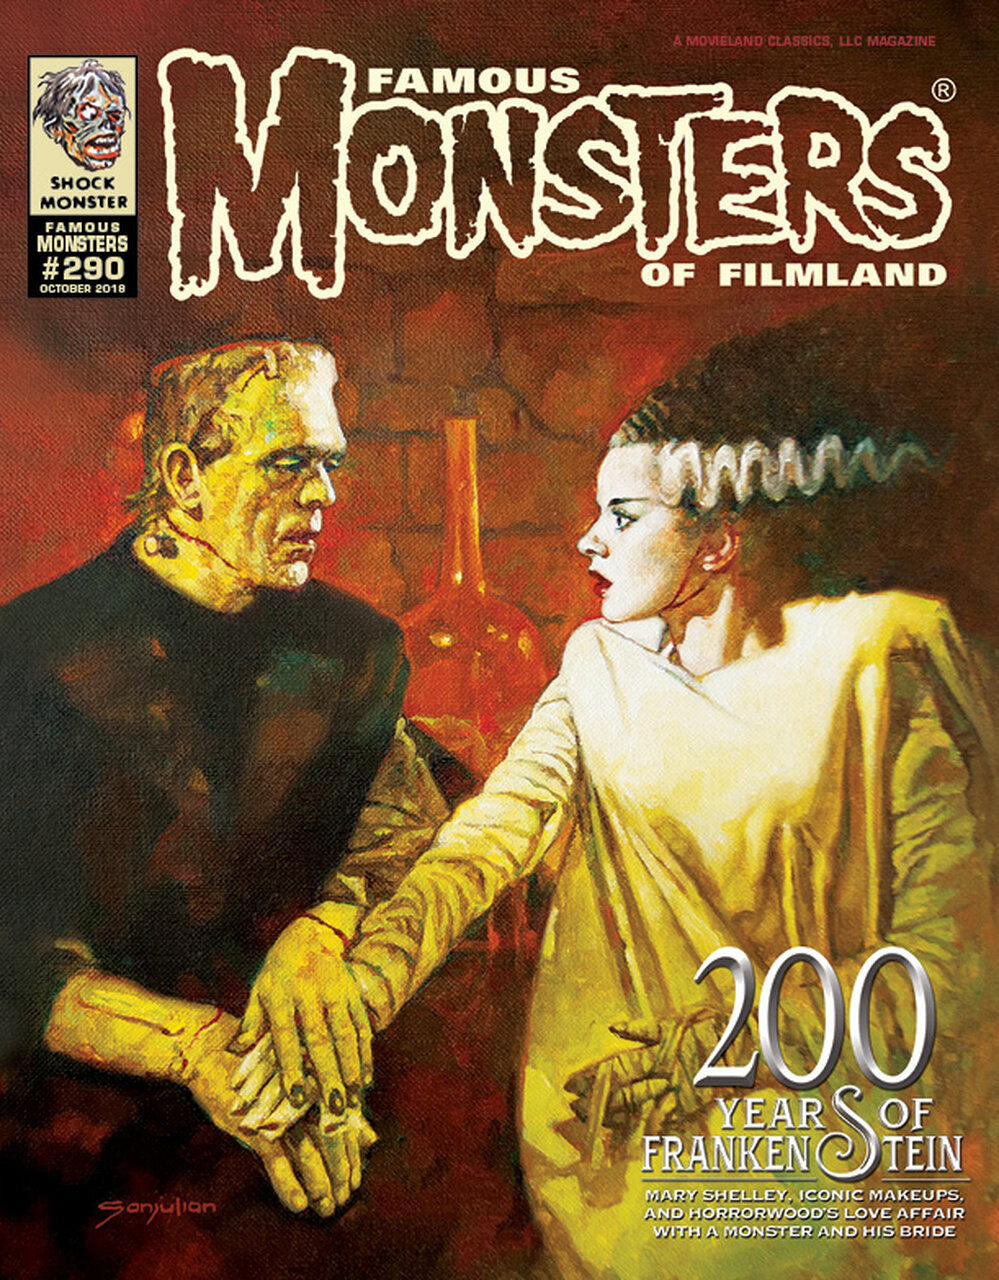 My short horror story Whisper in the Woods appears in Famous Monsters issue 290